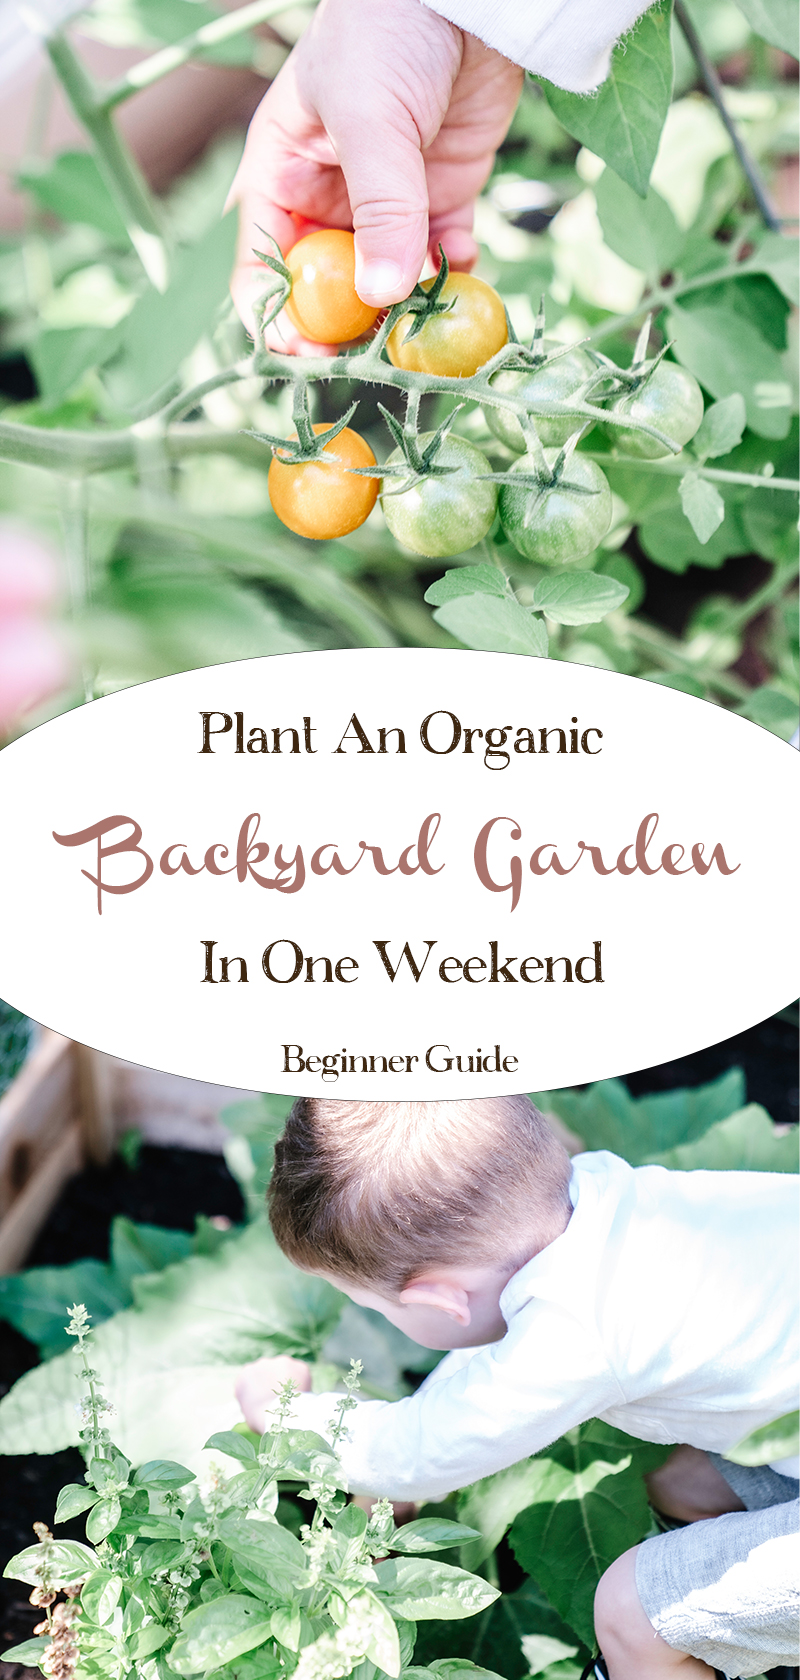 Plant-an-Organic-Backyard-Garden-in-One-Weekend